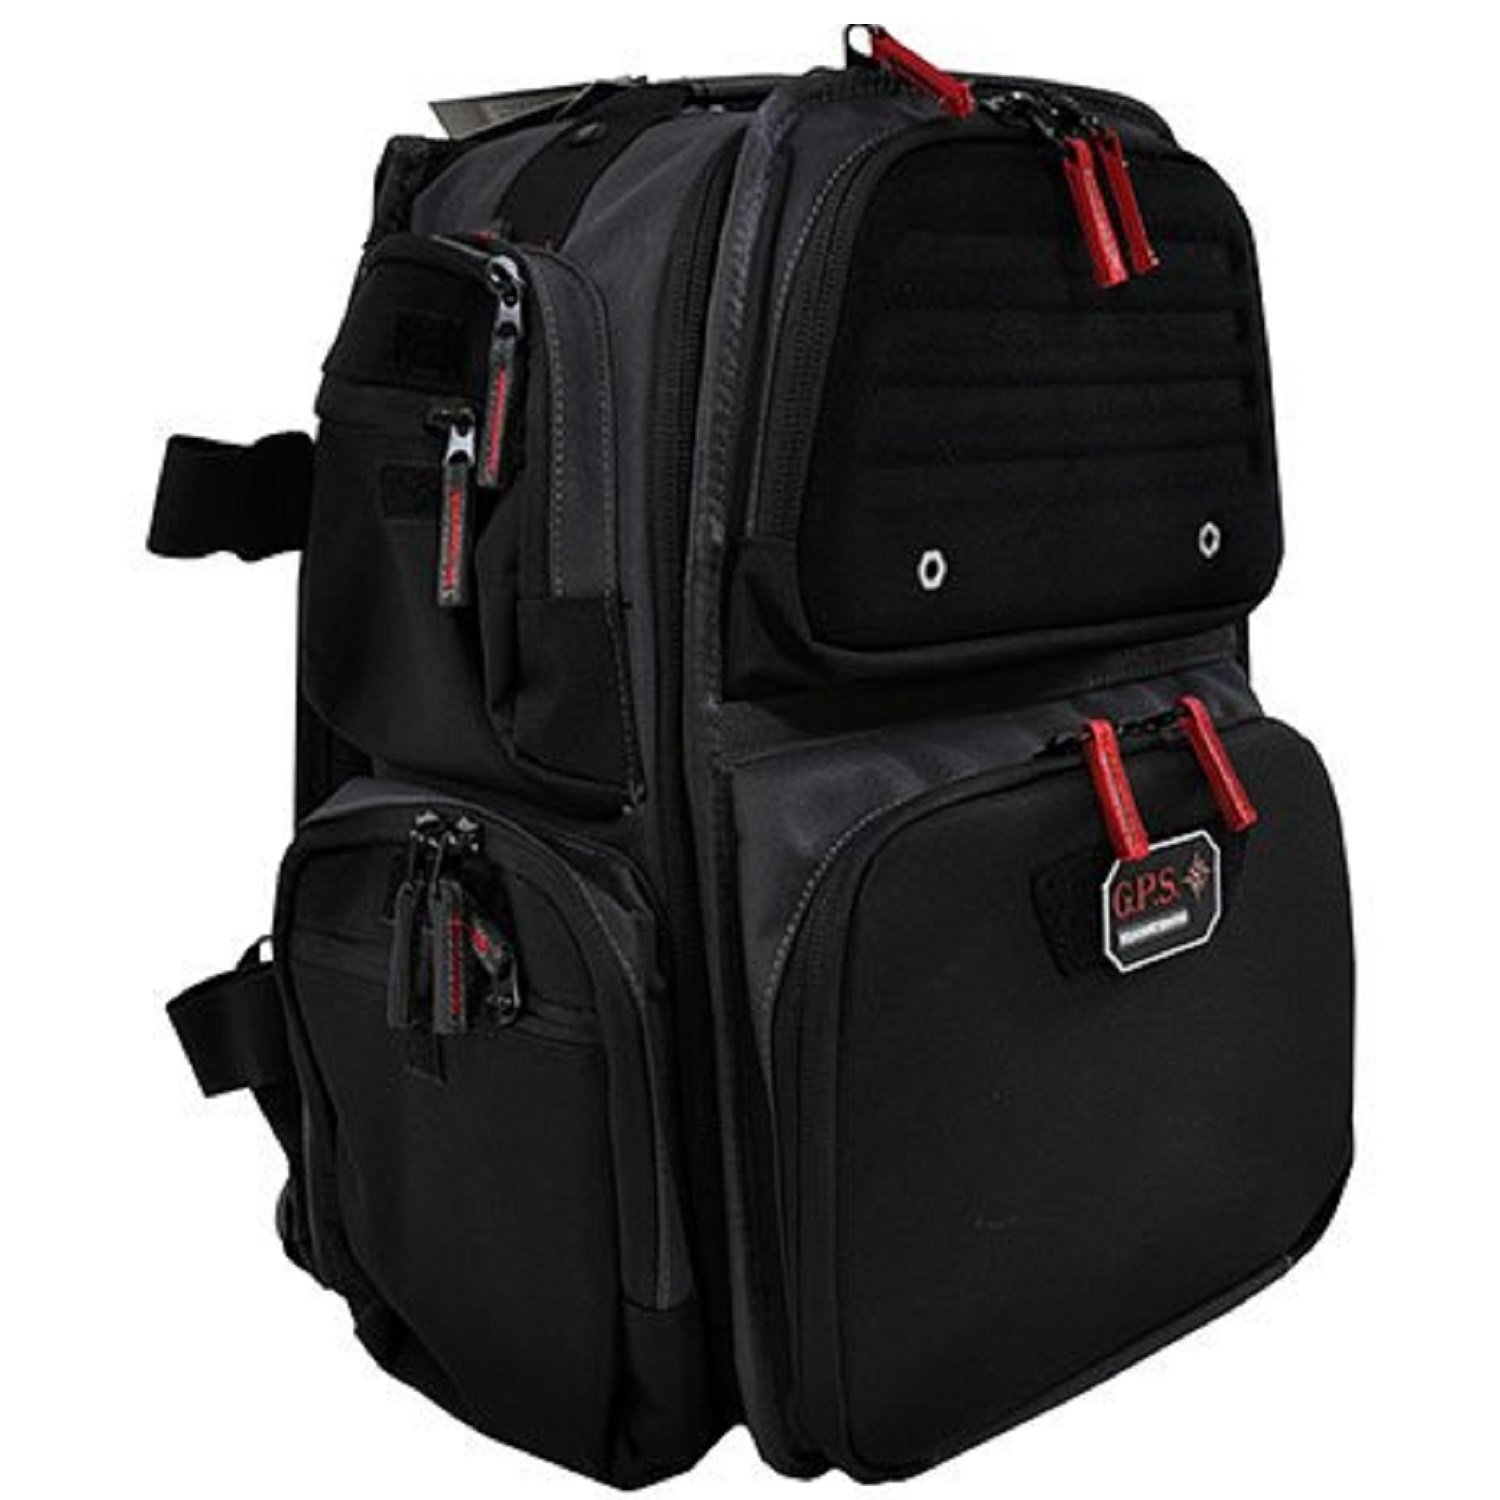 G5 Outdoors G Outdoors Executive Backpack W/Cradle for 5 Handguns